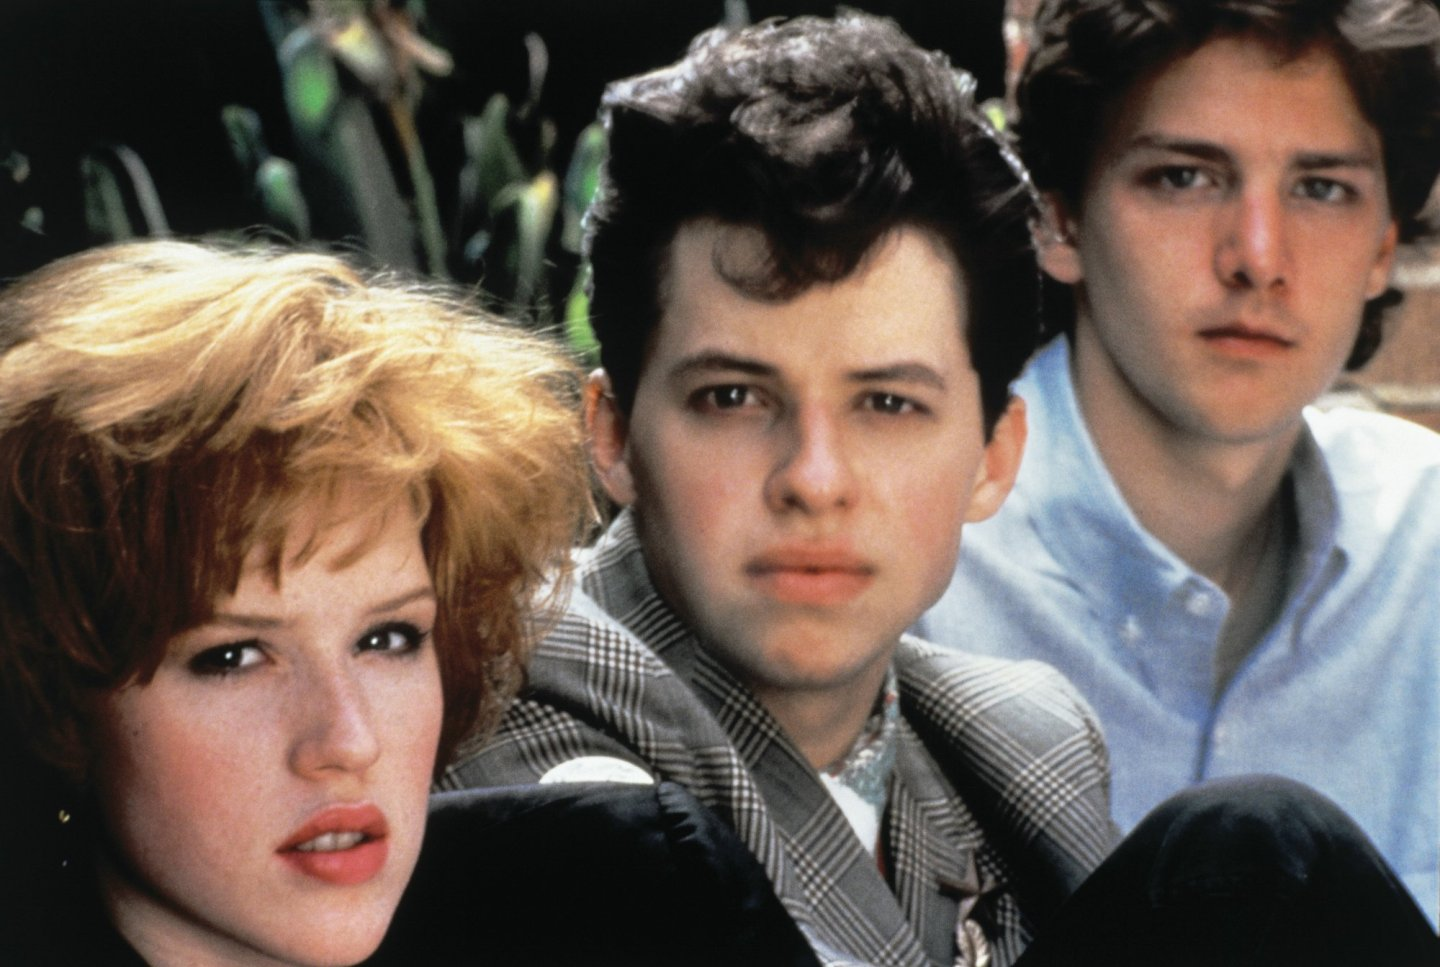 pretty in pink featured 20 Good-Looking Facts You Probably Never Knew About Pretty In Pink